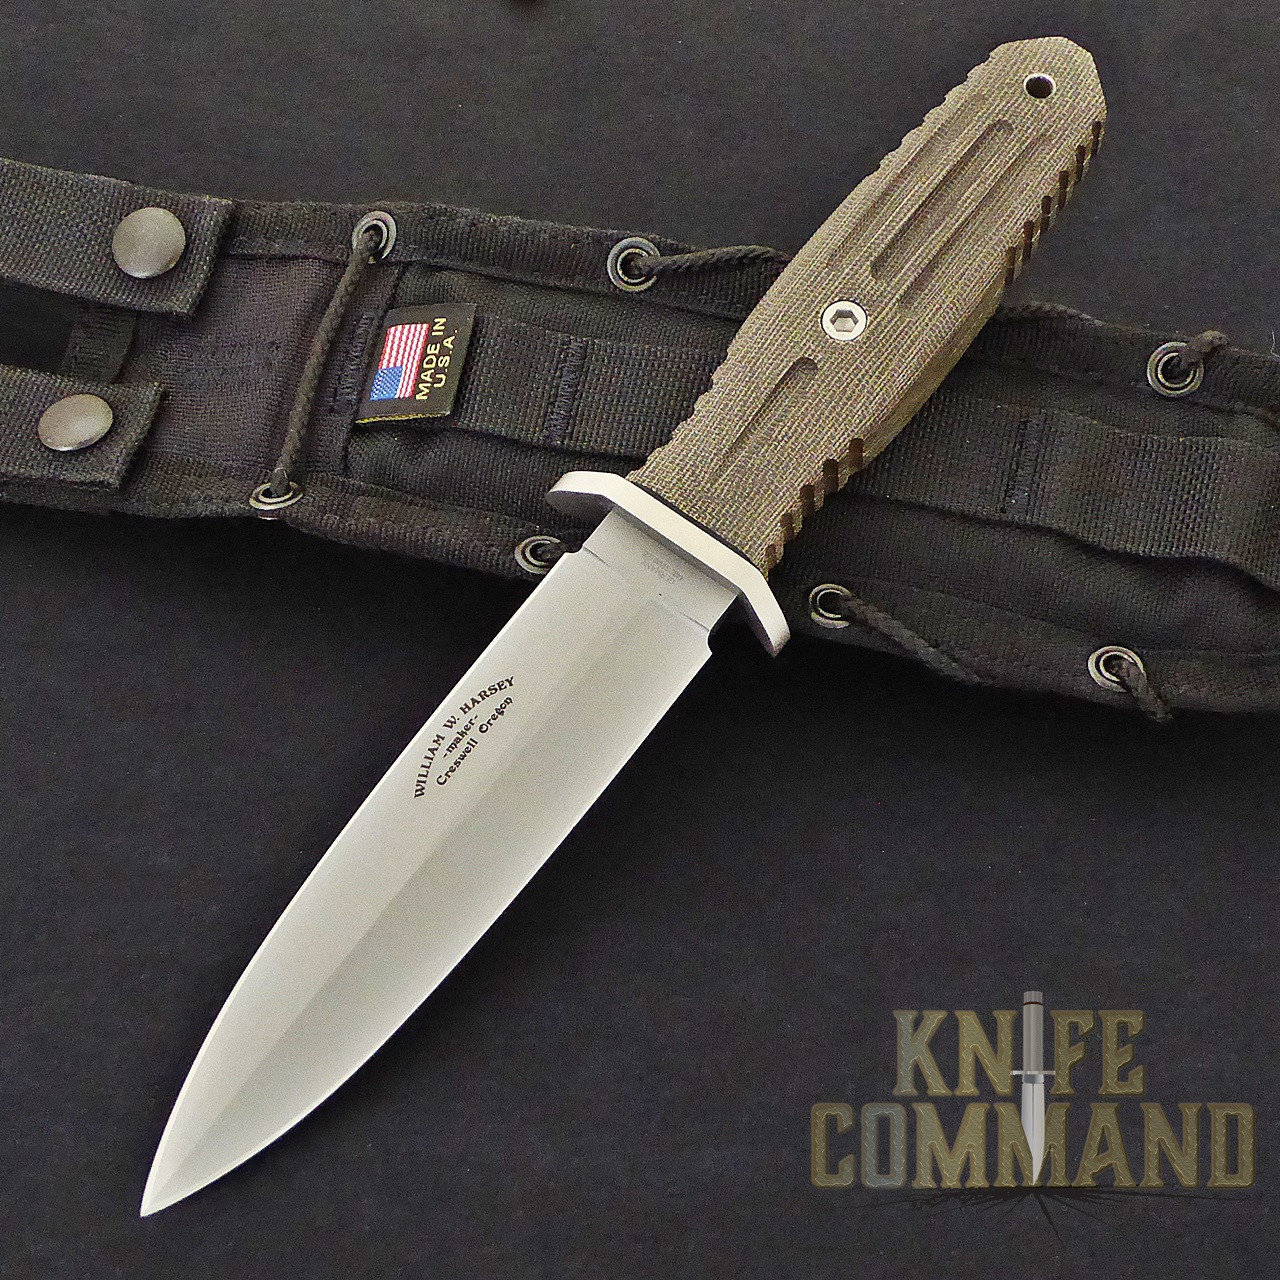 Boker Applegate-Fairbairn A-F 5.5 Harsey Combat Knife 120545.  William Harsey design.